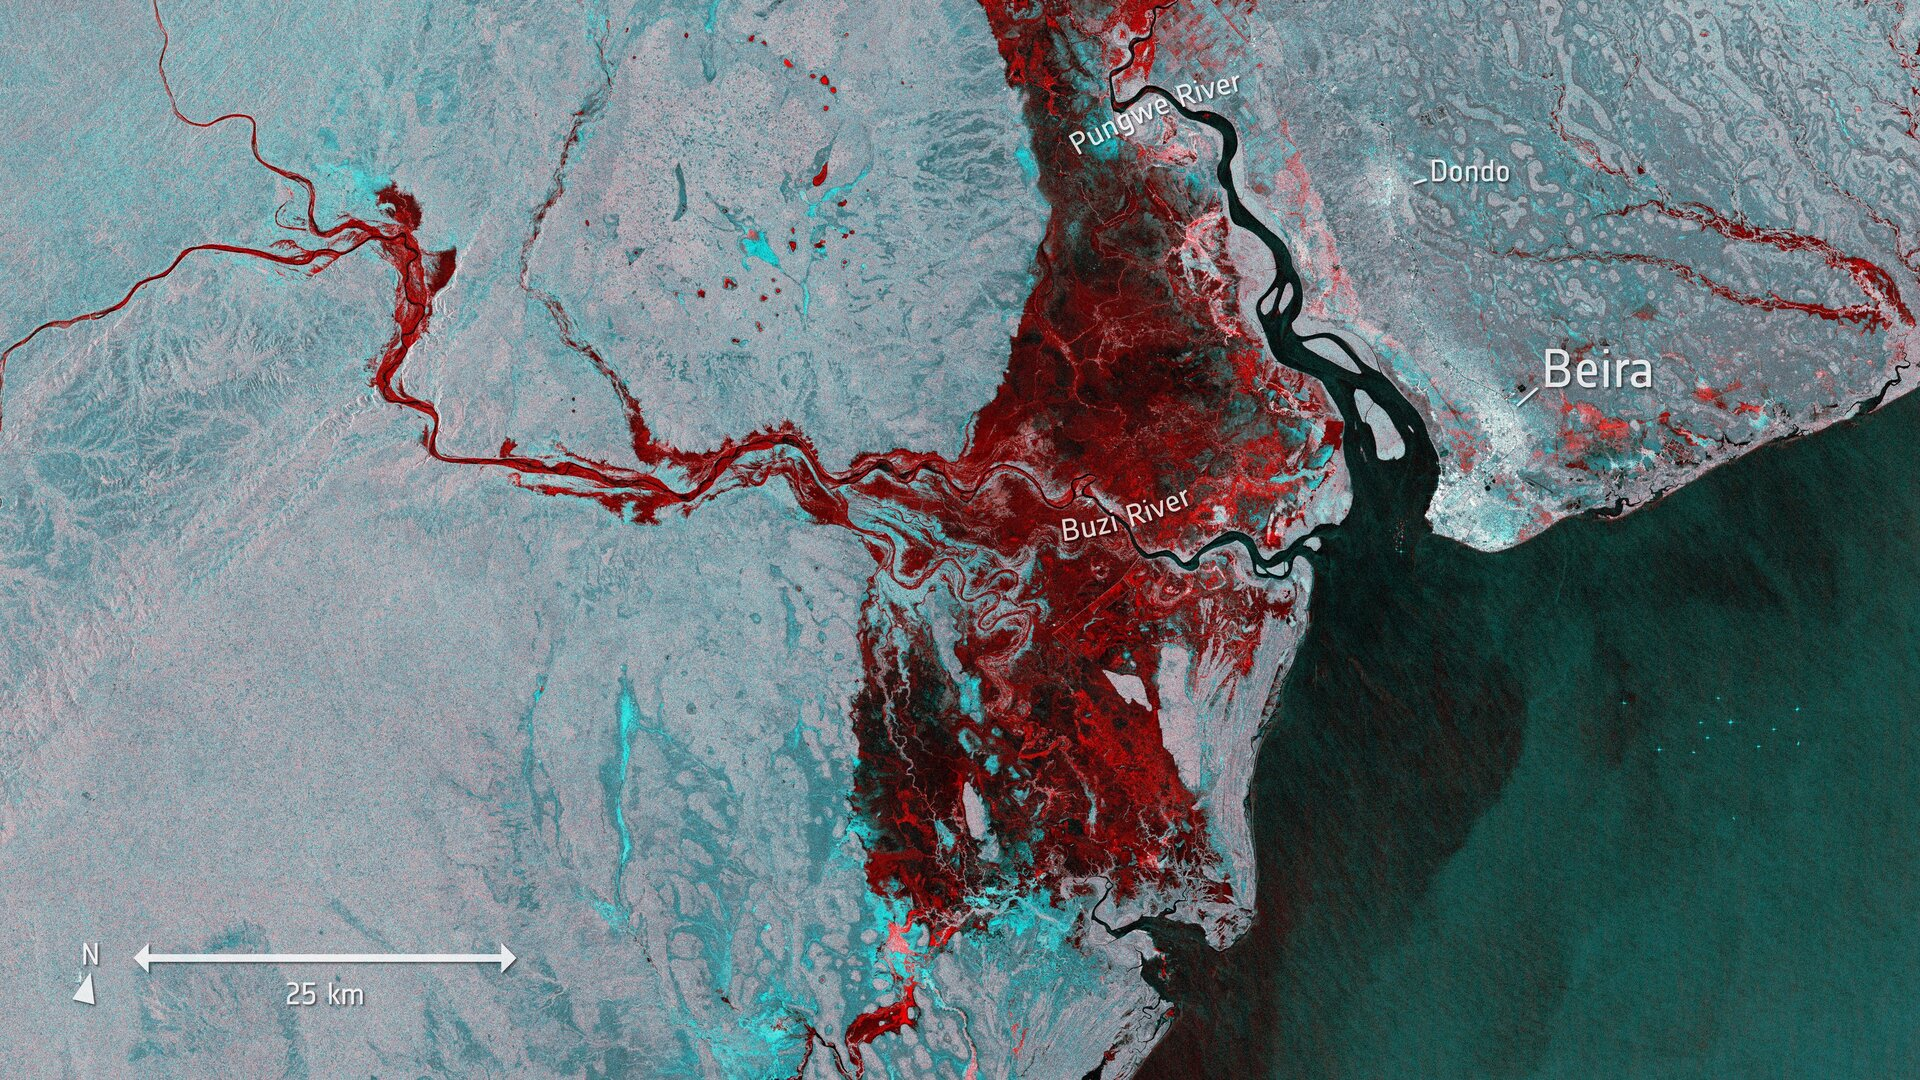 Floods imaged by Copernicus Sentinel-1